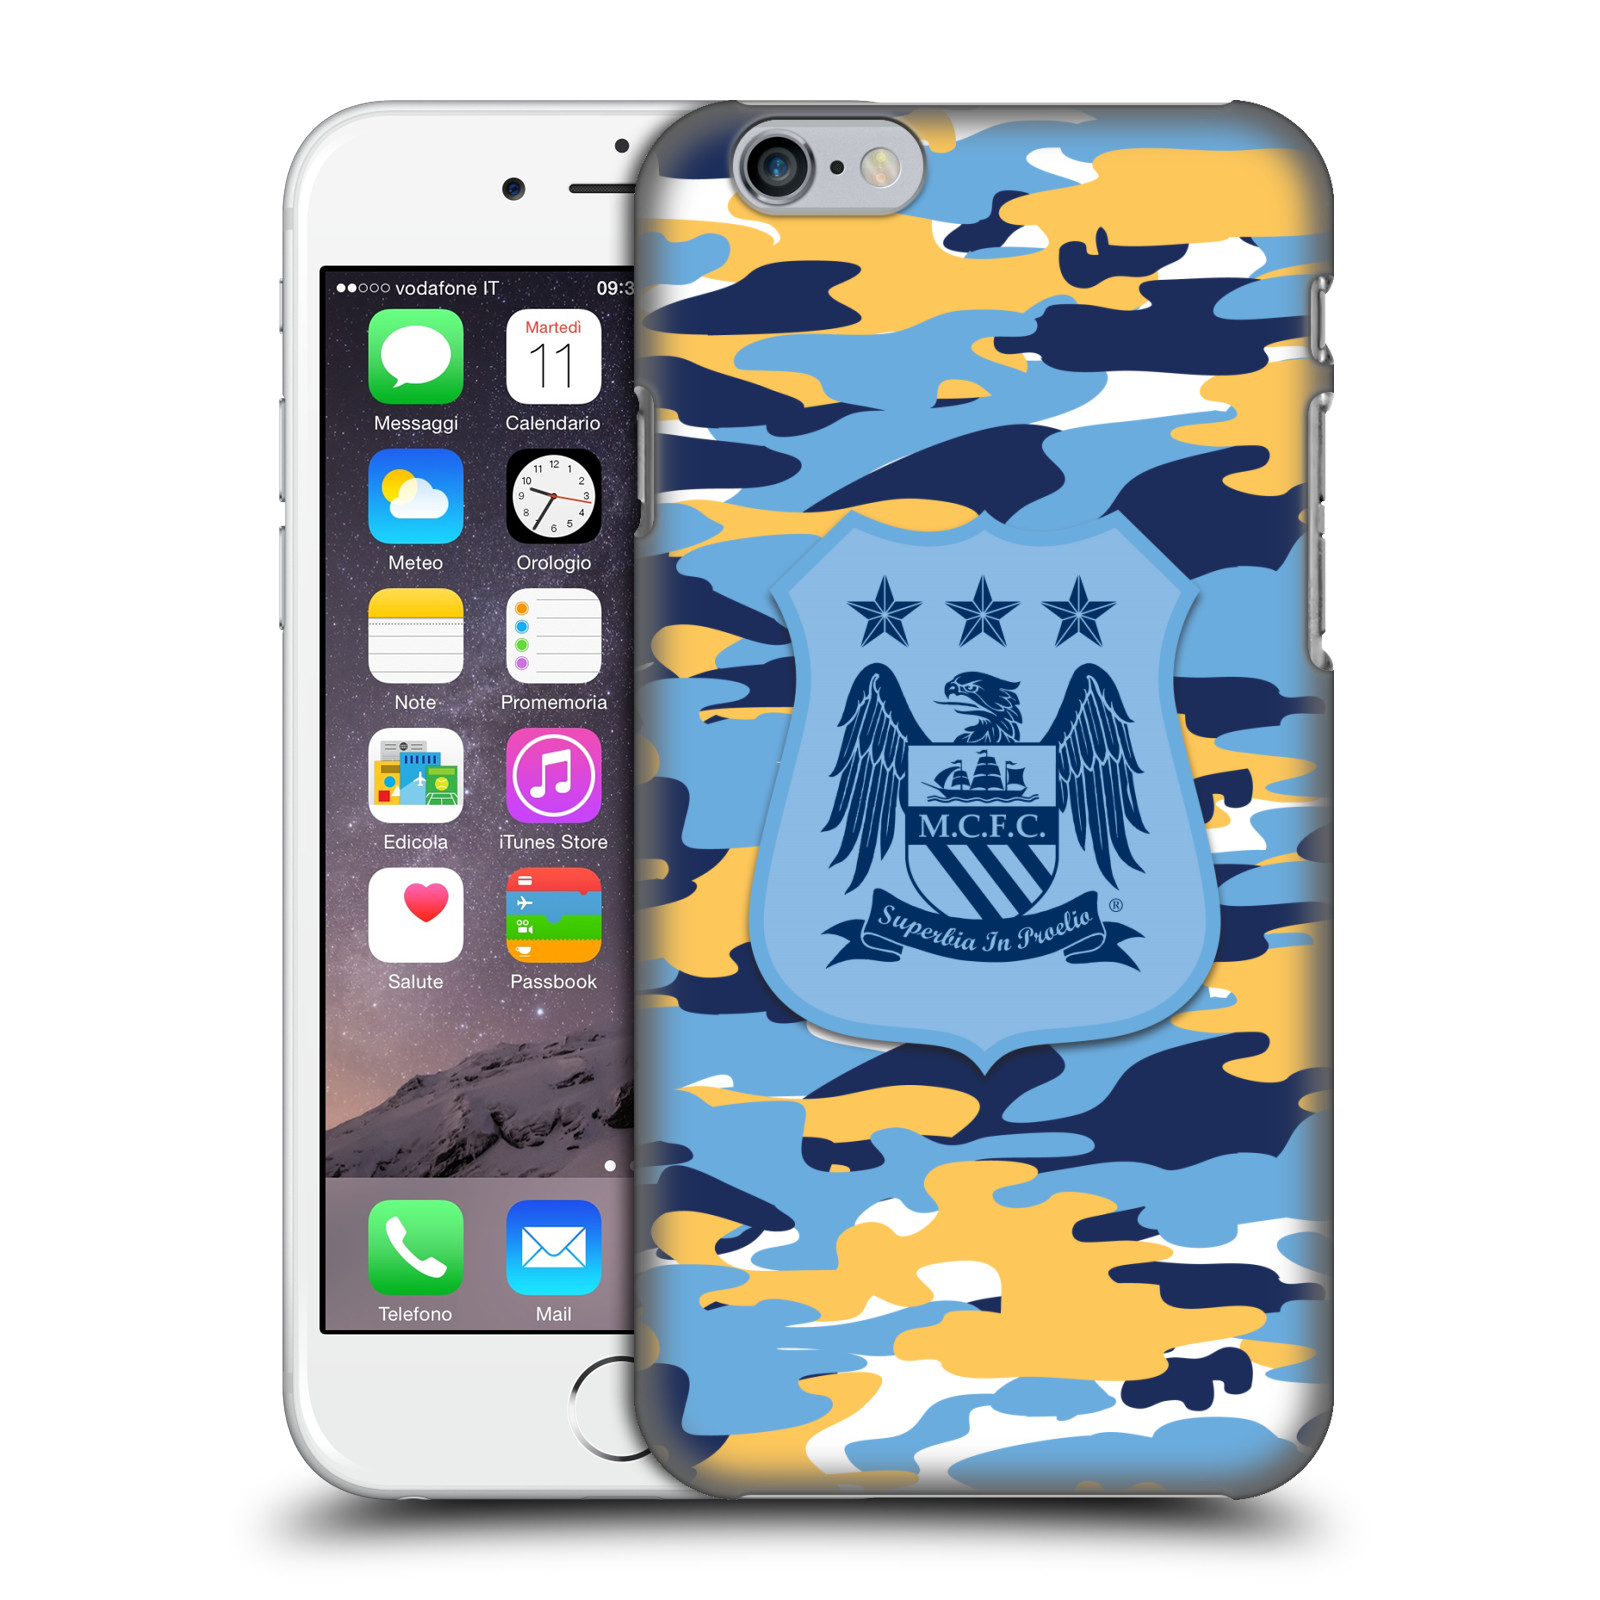 Manchester City FC MCFC Camou-Club Colourways One colour